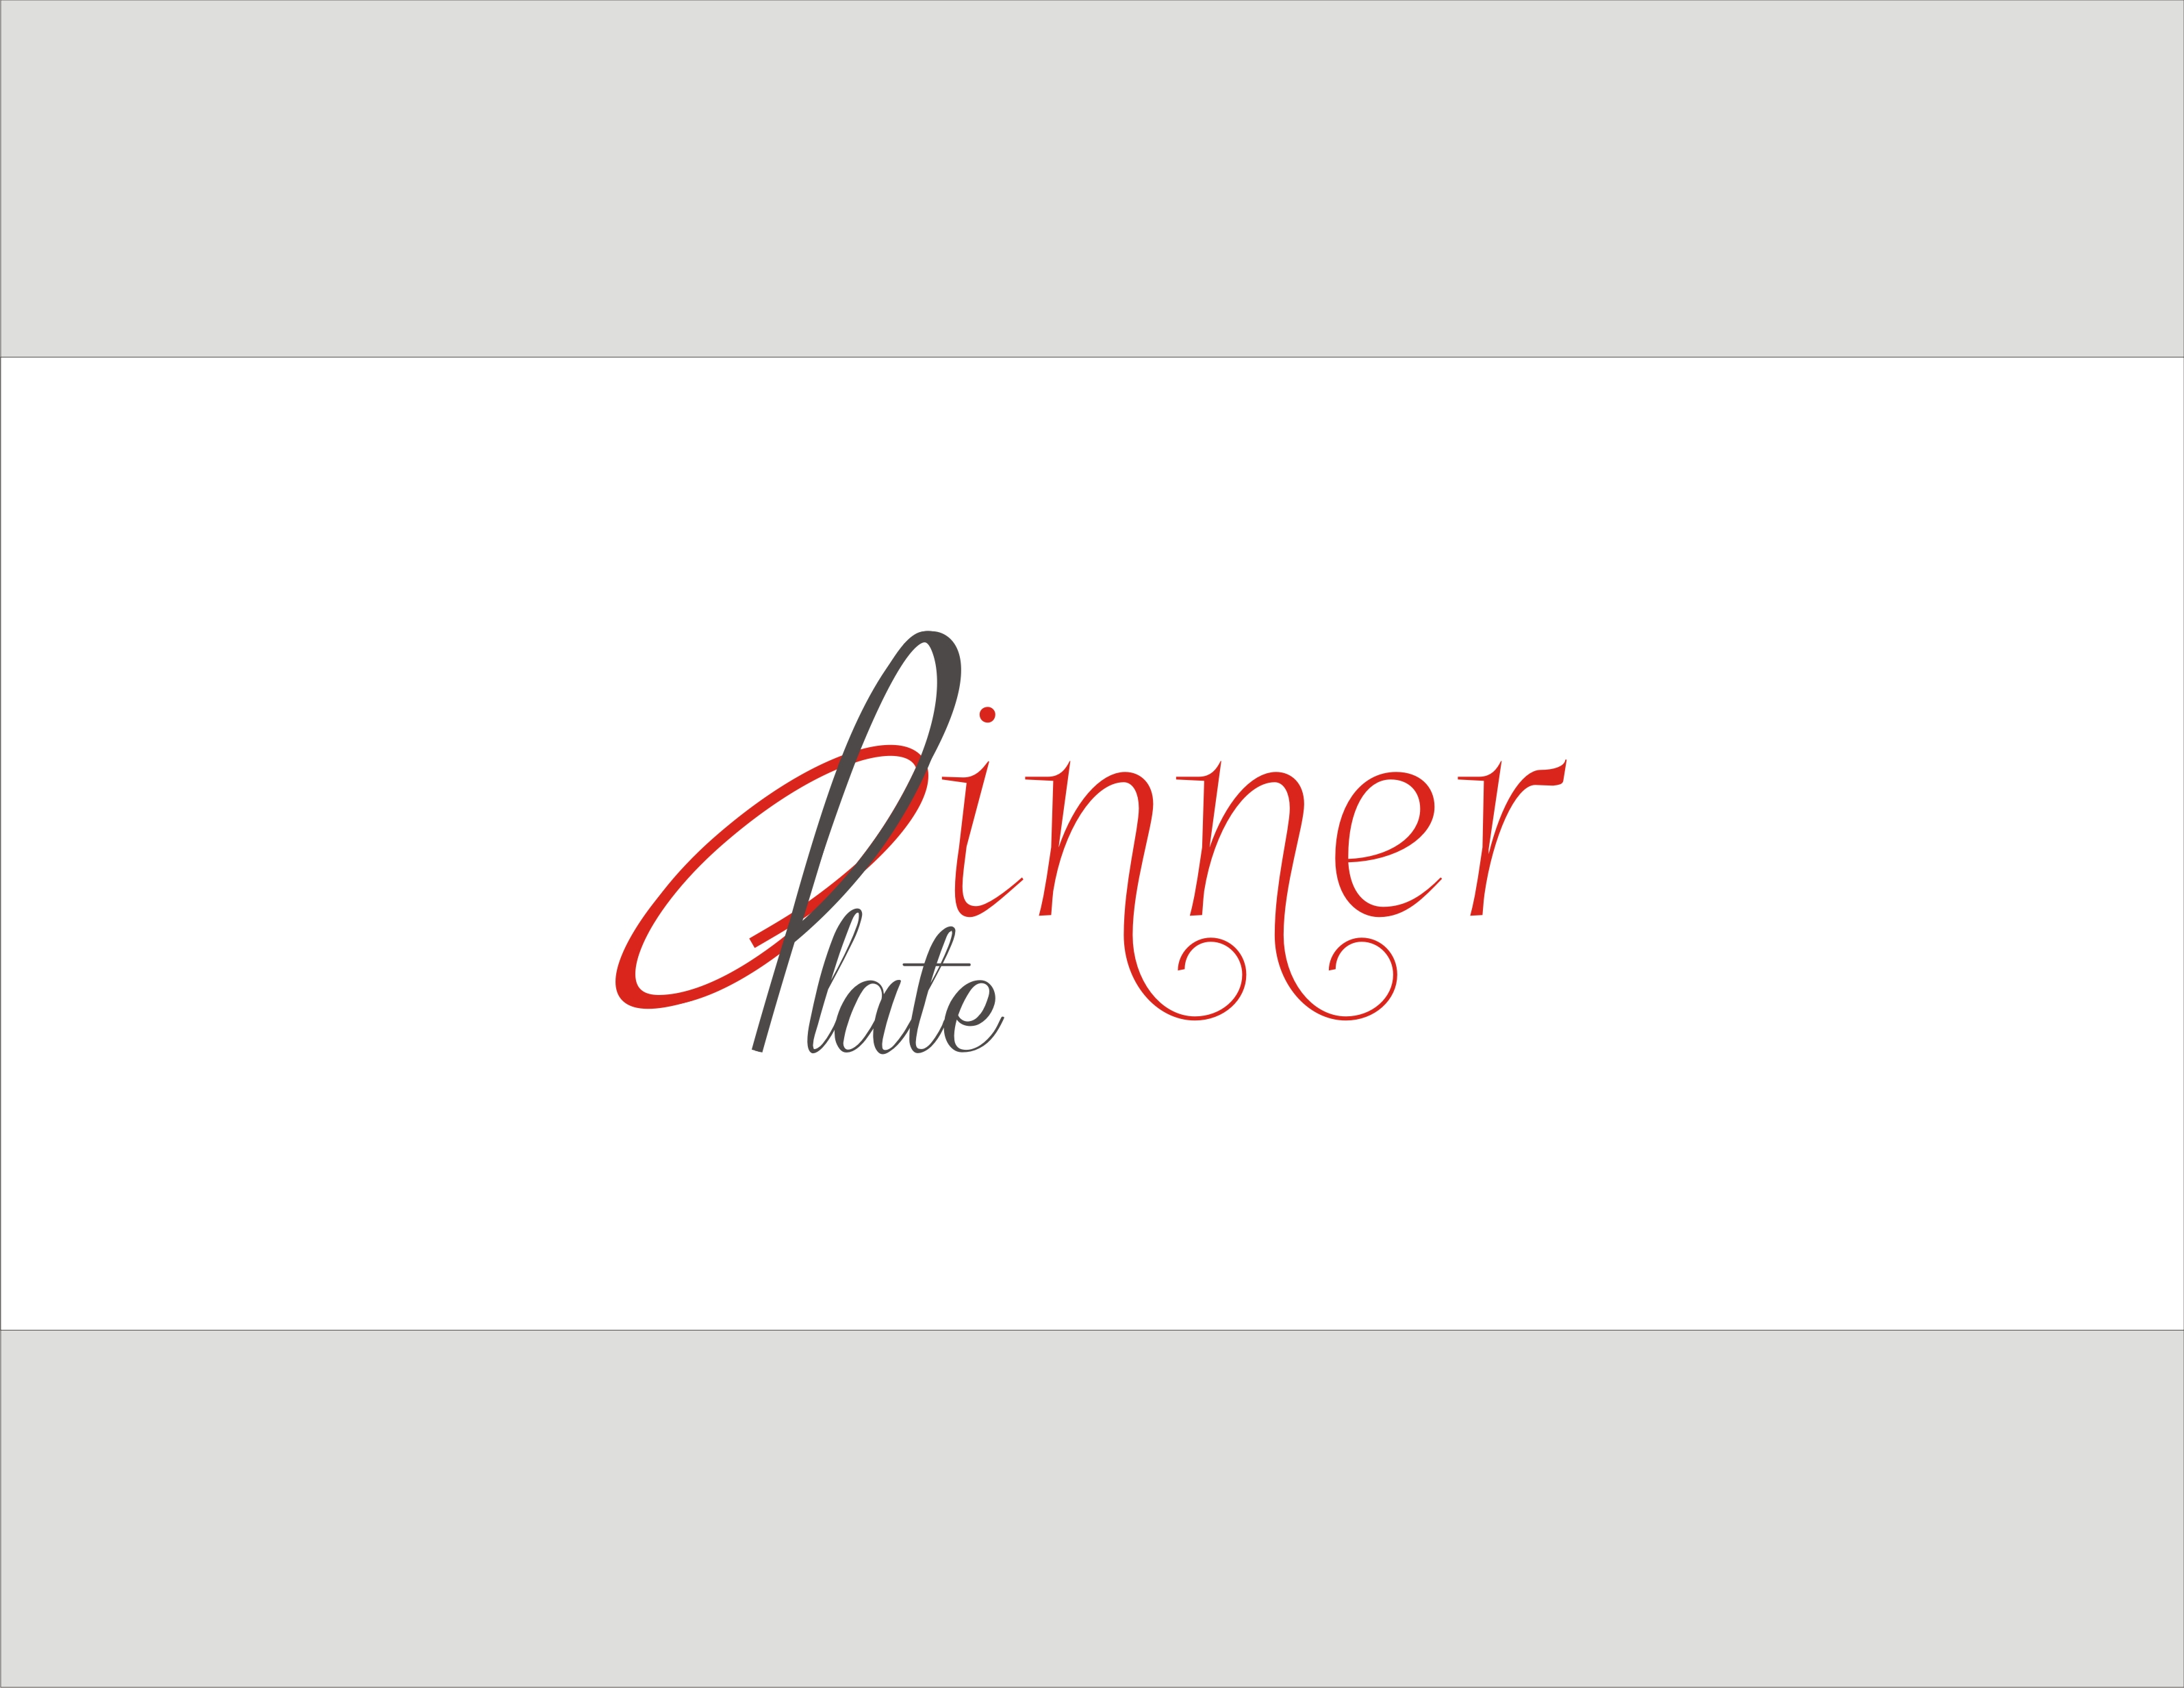 Logo Design by Sandip Kumar - Entry No. 103 in the Logo Design Contest Imaginative Logo Design for Dinner Plate.